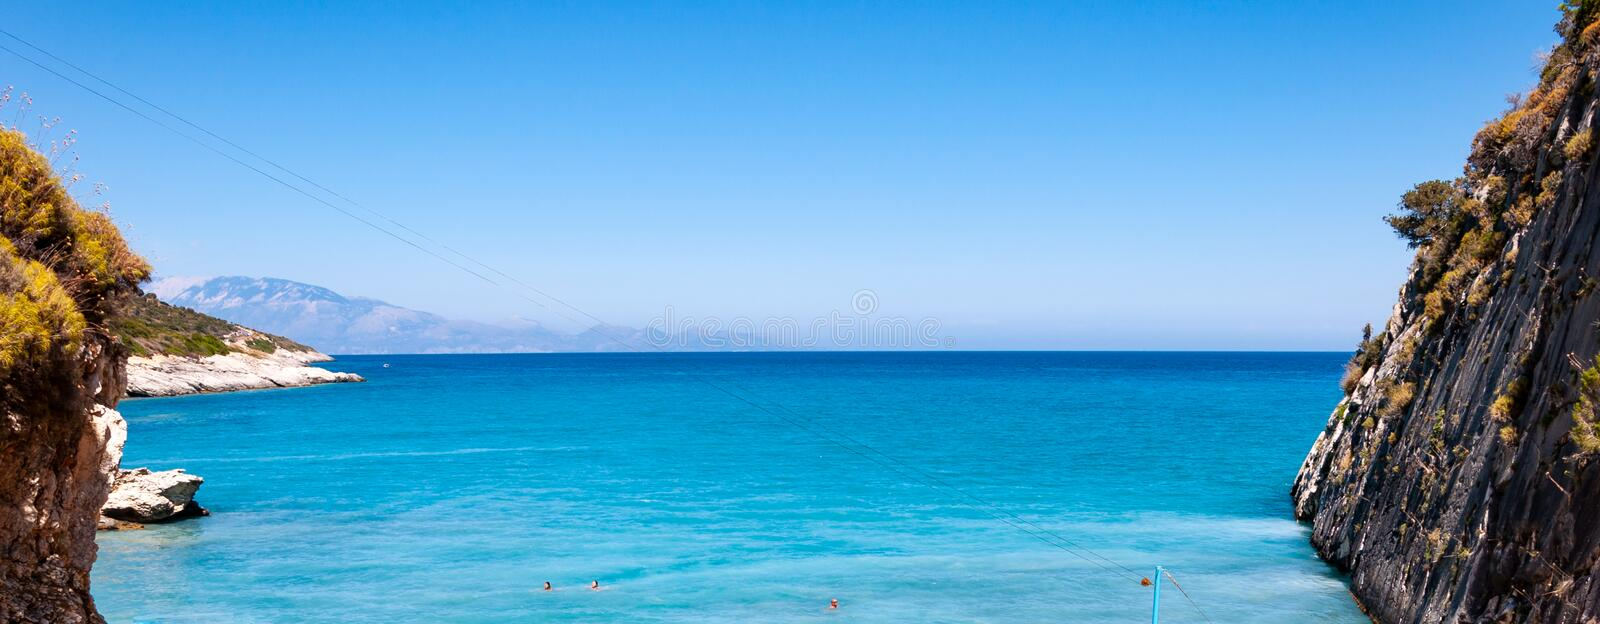 Zakynthos Island, Greece. A pearl of the Mediterranean with beaches and coasts suitable for unforgettable sea holidays. Xigia beach royalty free stock photography